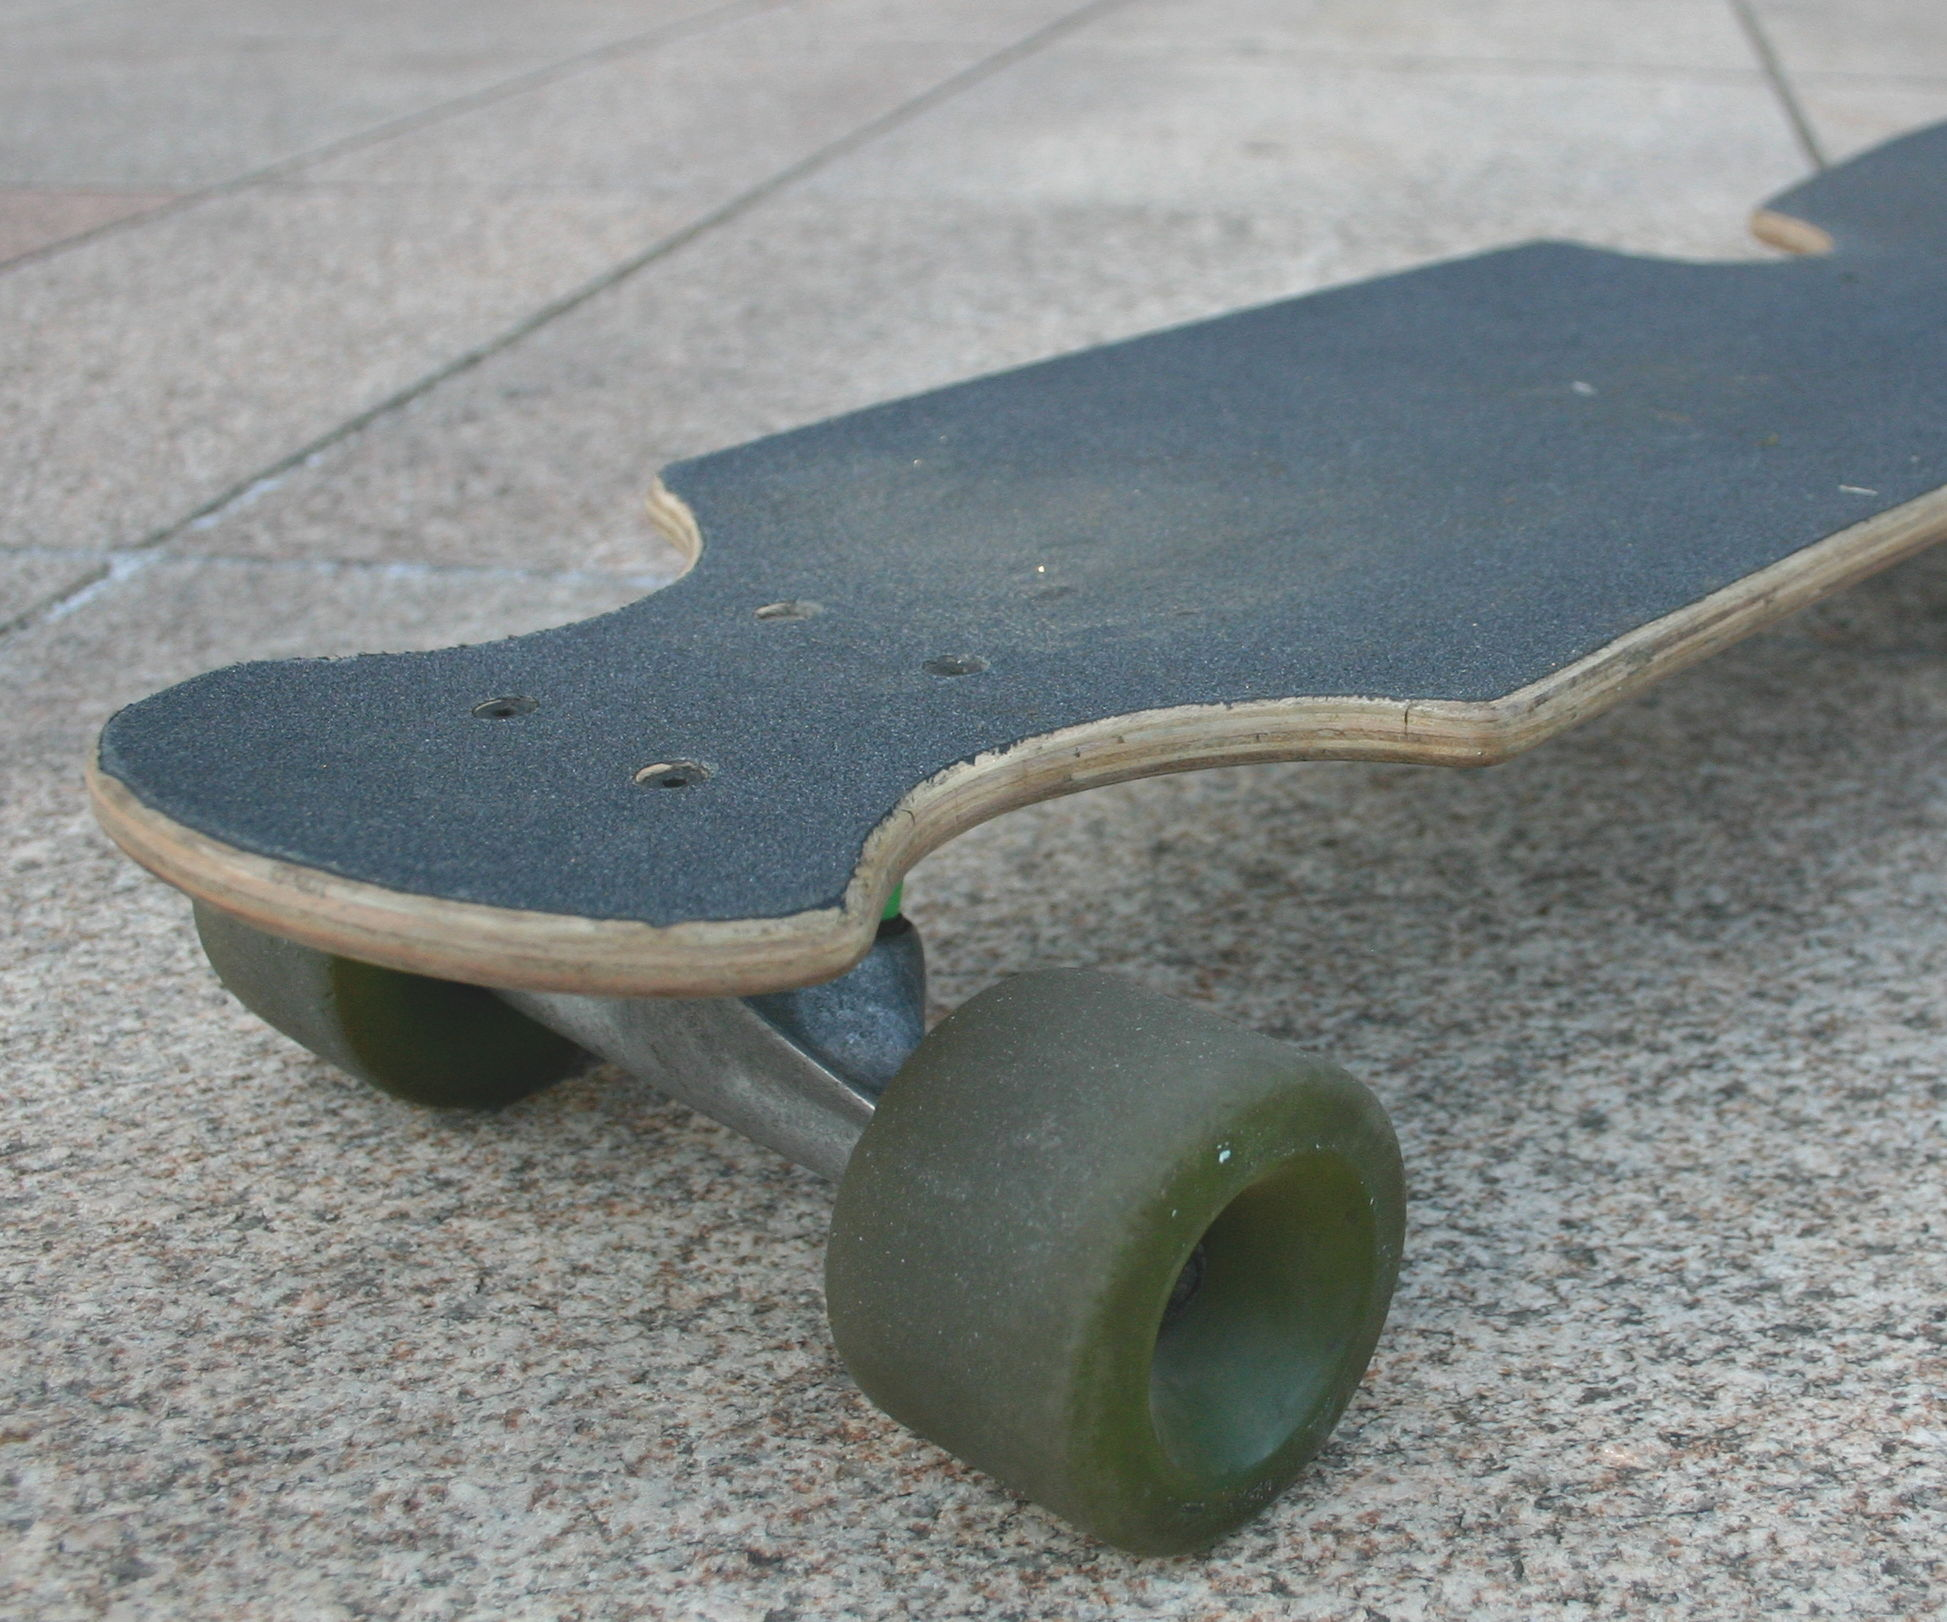 Make a Mini-cruiser board from an old Skateboard